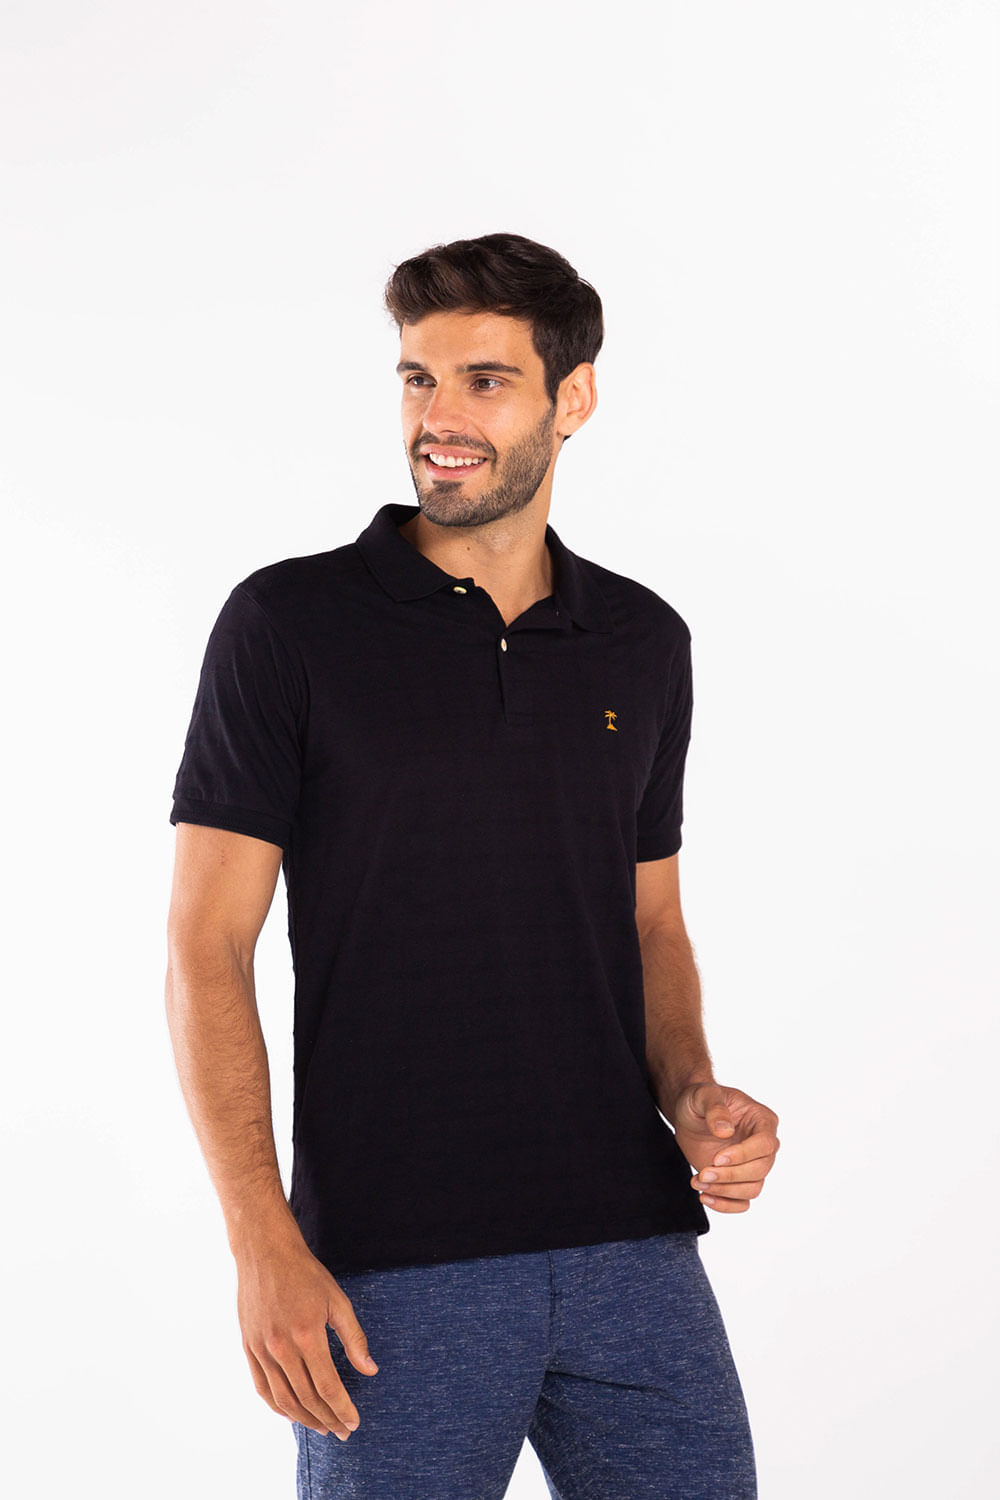 Polo-Jacquard-Joatinga---Black-72517BK